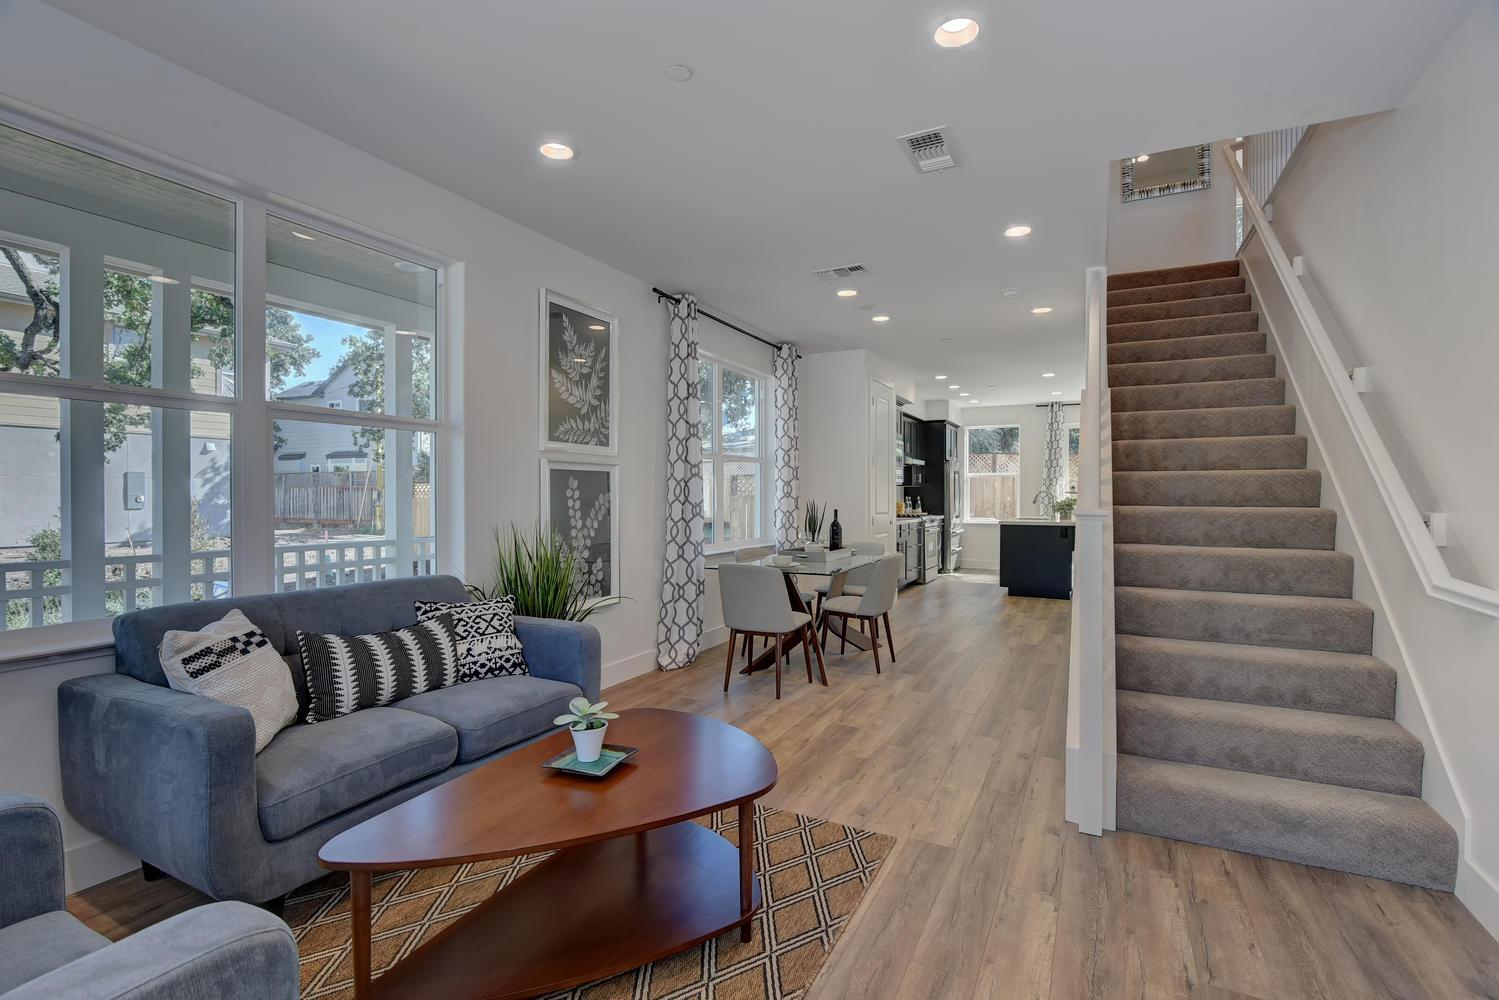 Single Family for Sale at Rincon Place - Residence A 949 Prospect Avenue Santa Rosa, California 95409 United States